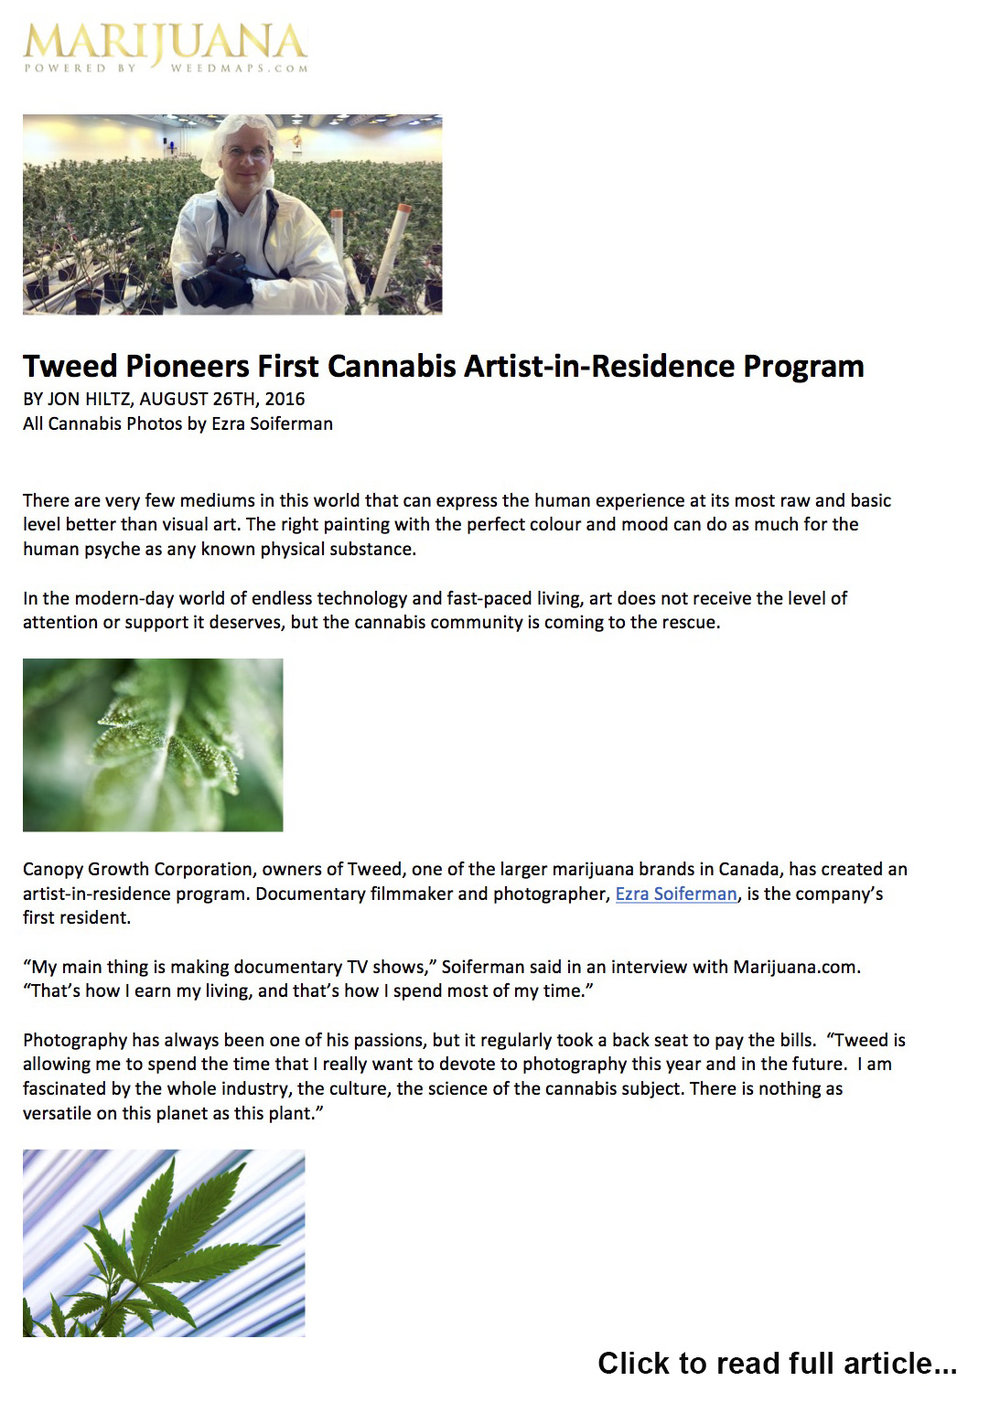 Tweed Artist-in-Residence - Marijuana.com feature story, 2016.